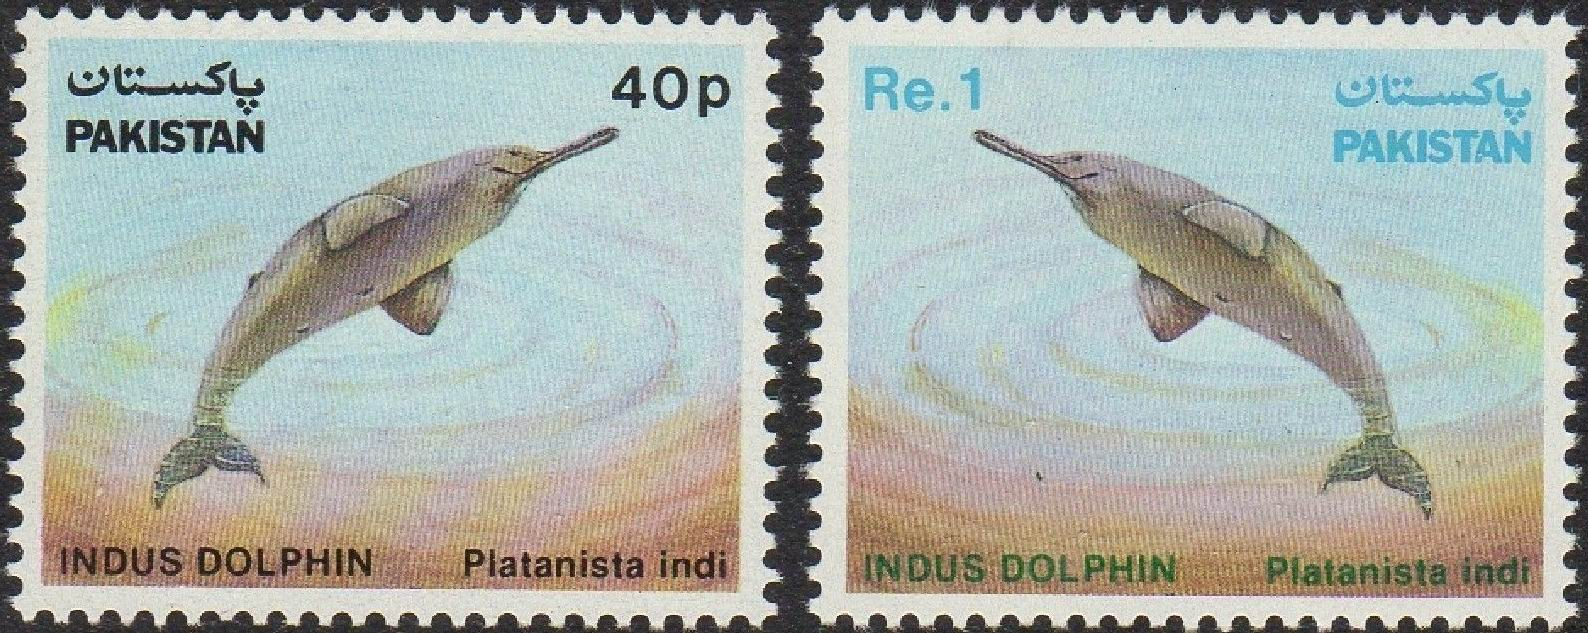 Pakistan Stamps 1982 Blind Indus Dolphin